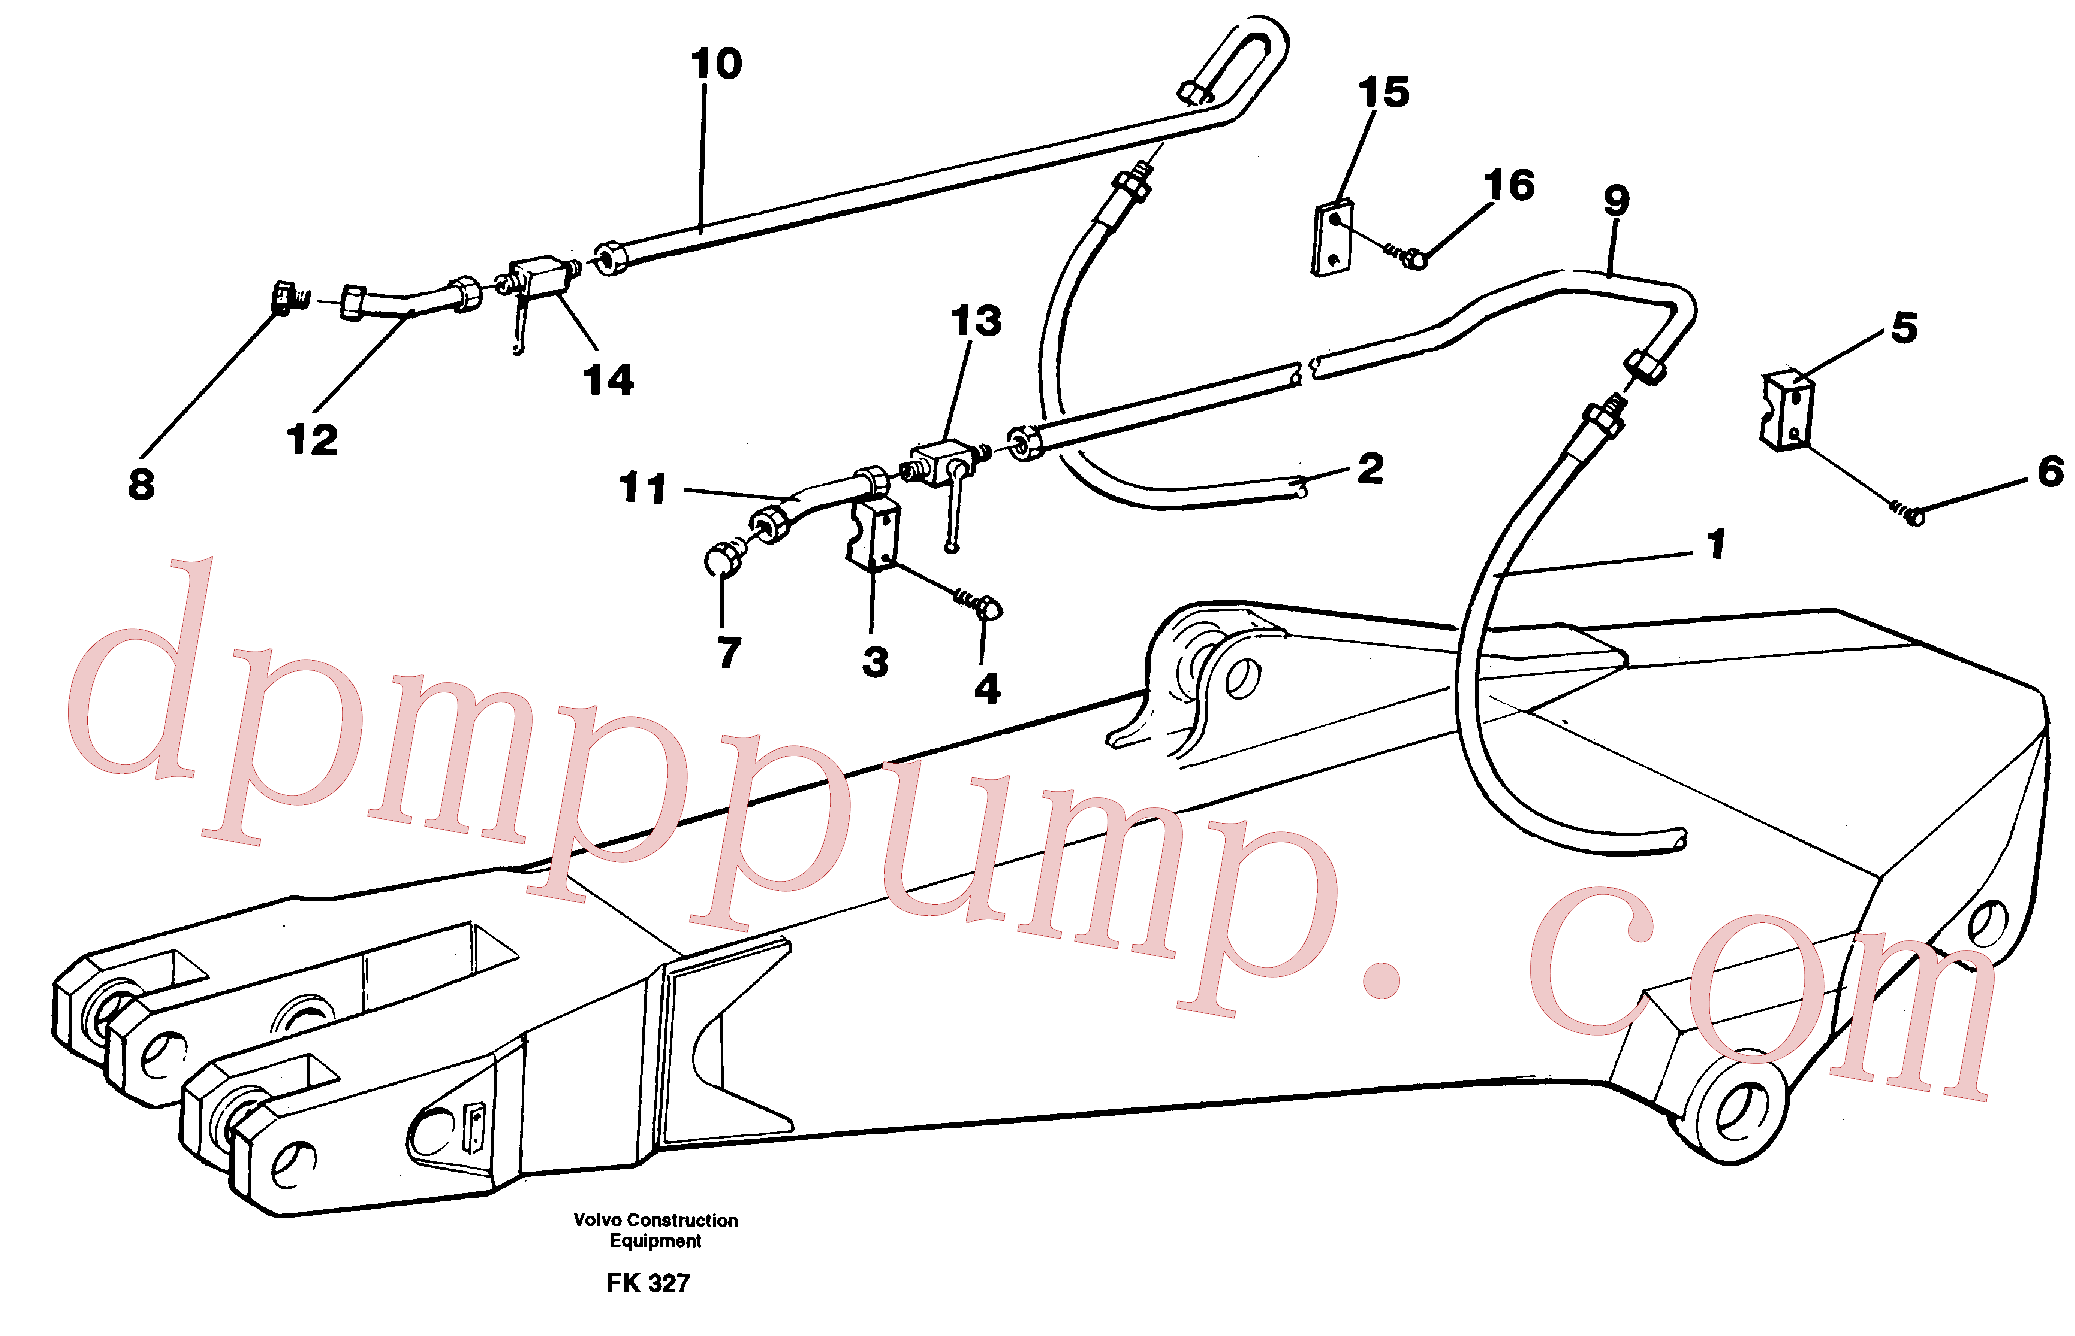 VOE14210940 for Volvo Hammer hydraulics for dipper arm incl. shut-offcocks.(FK327 assembly)